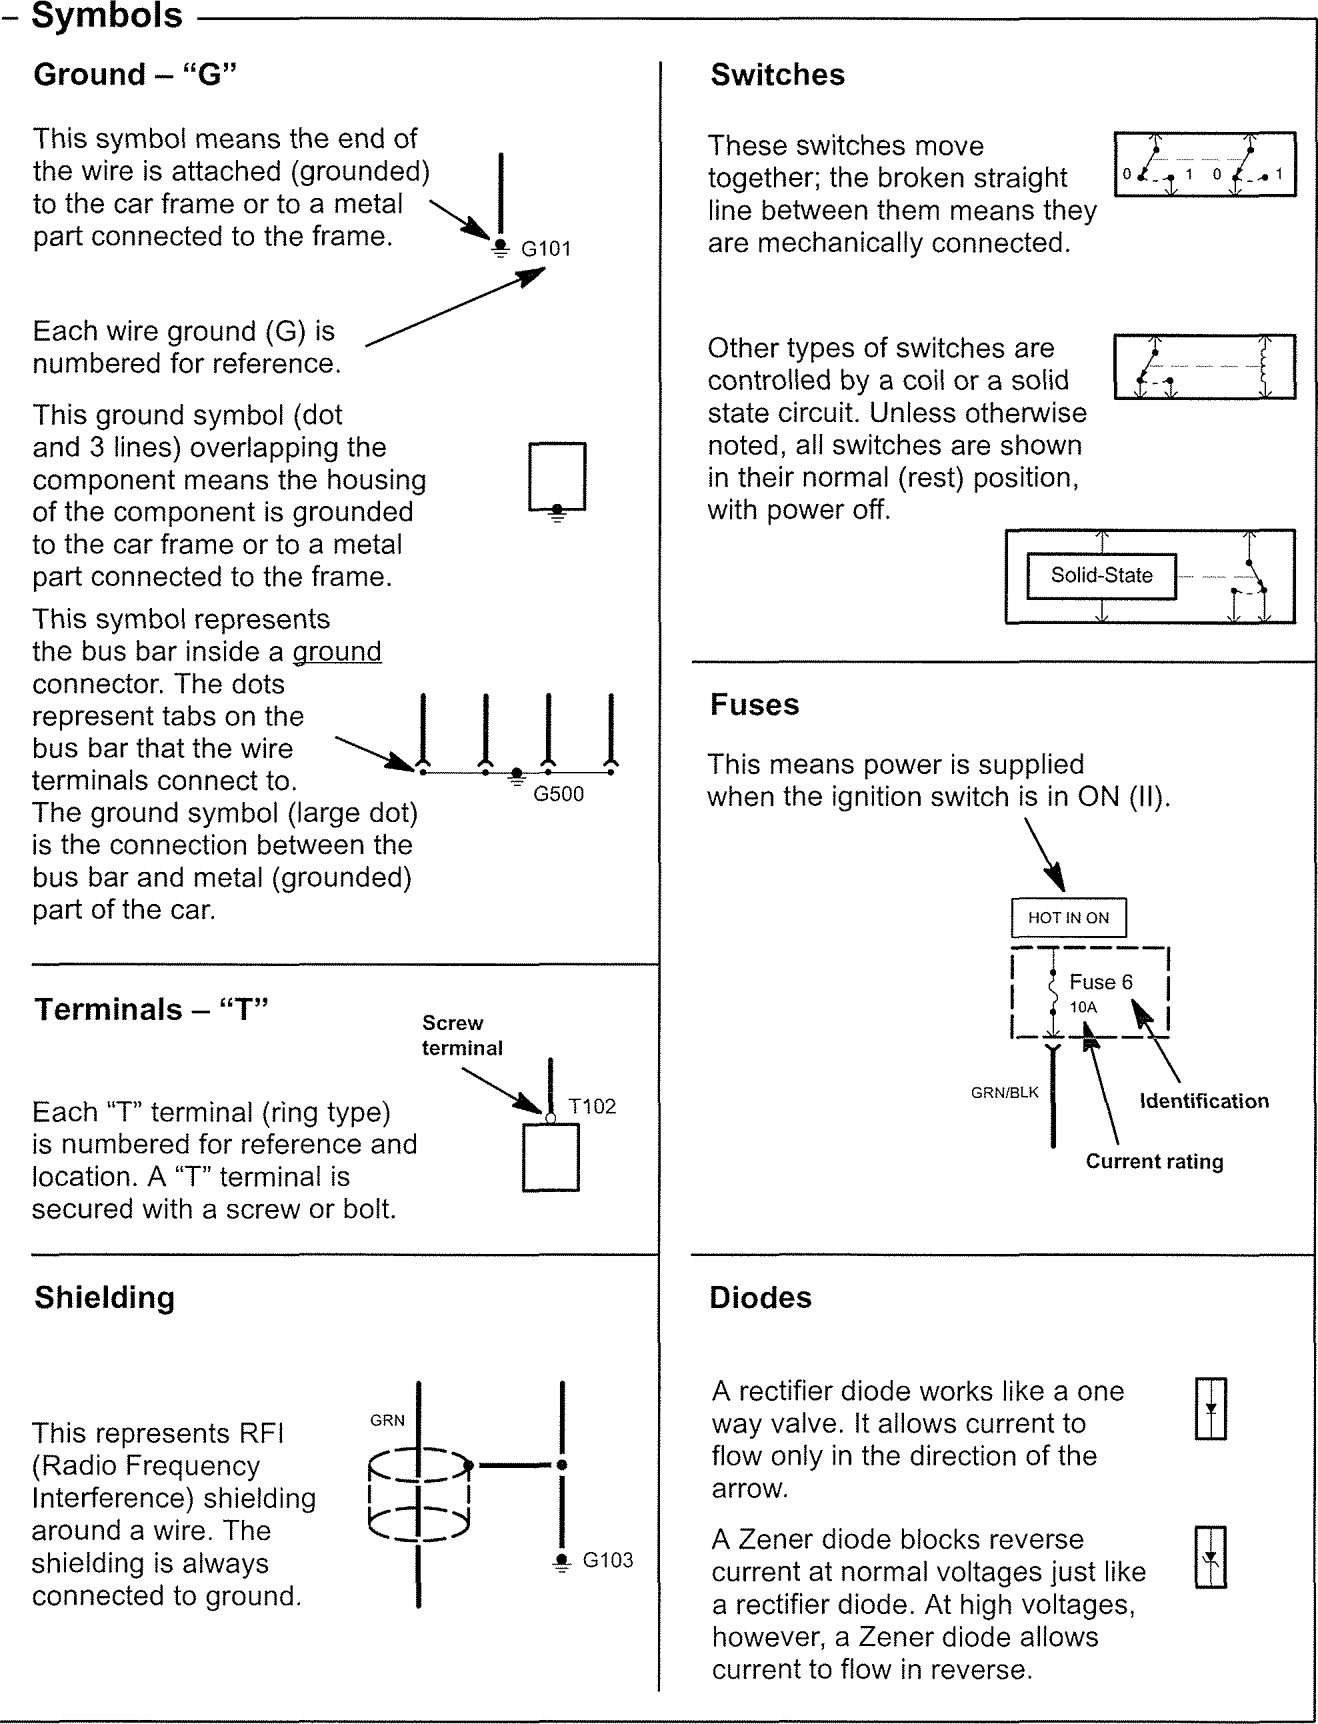 Symbol For Ground On Wiring Diagram Acura Tl 2005 2007 Diagrams Id Carknowledge Part 3